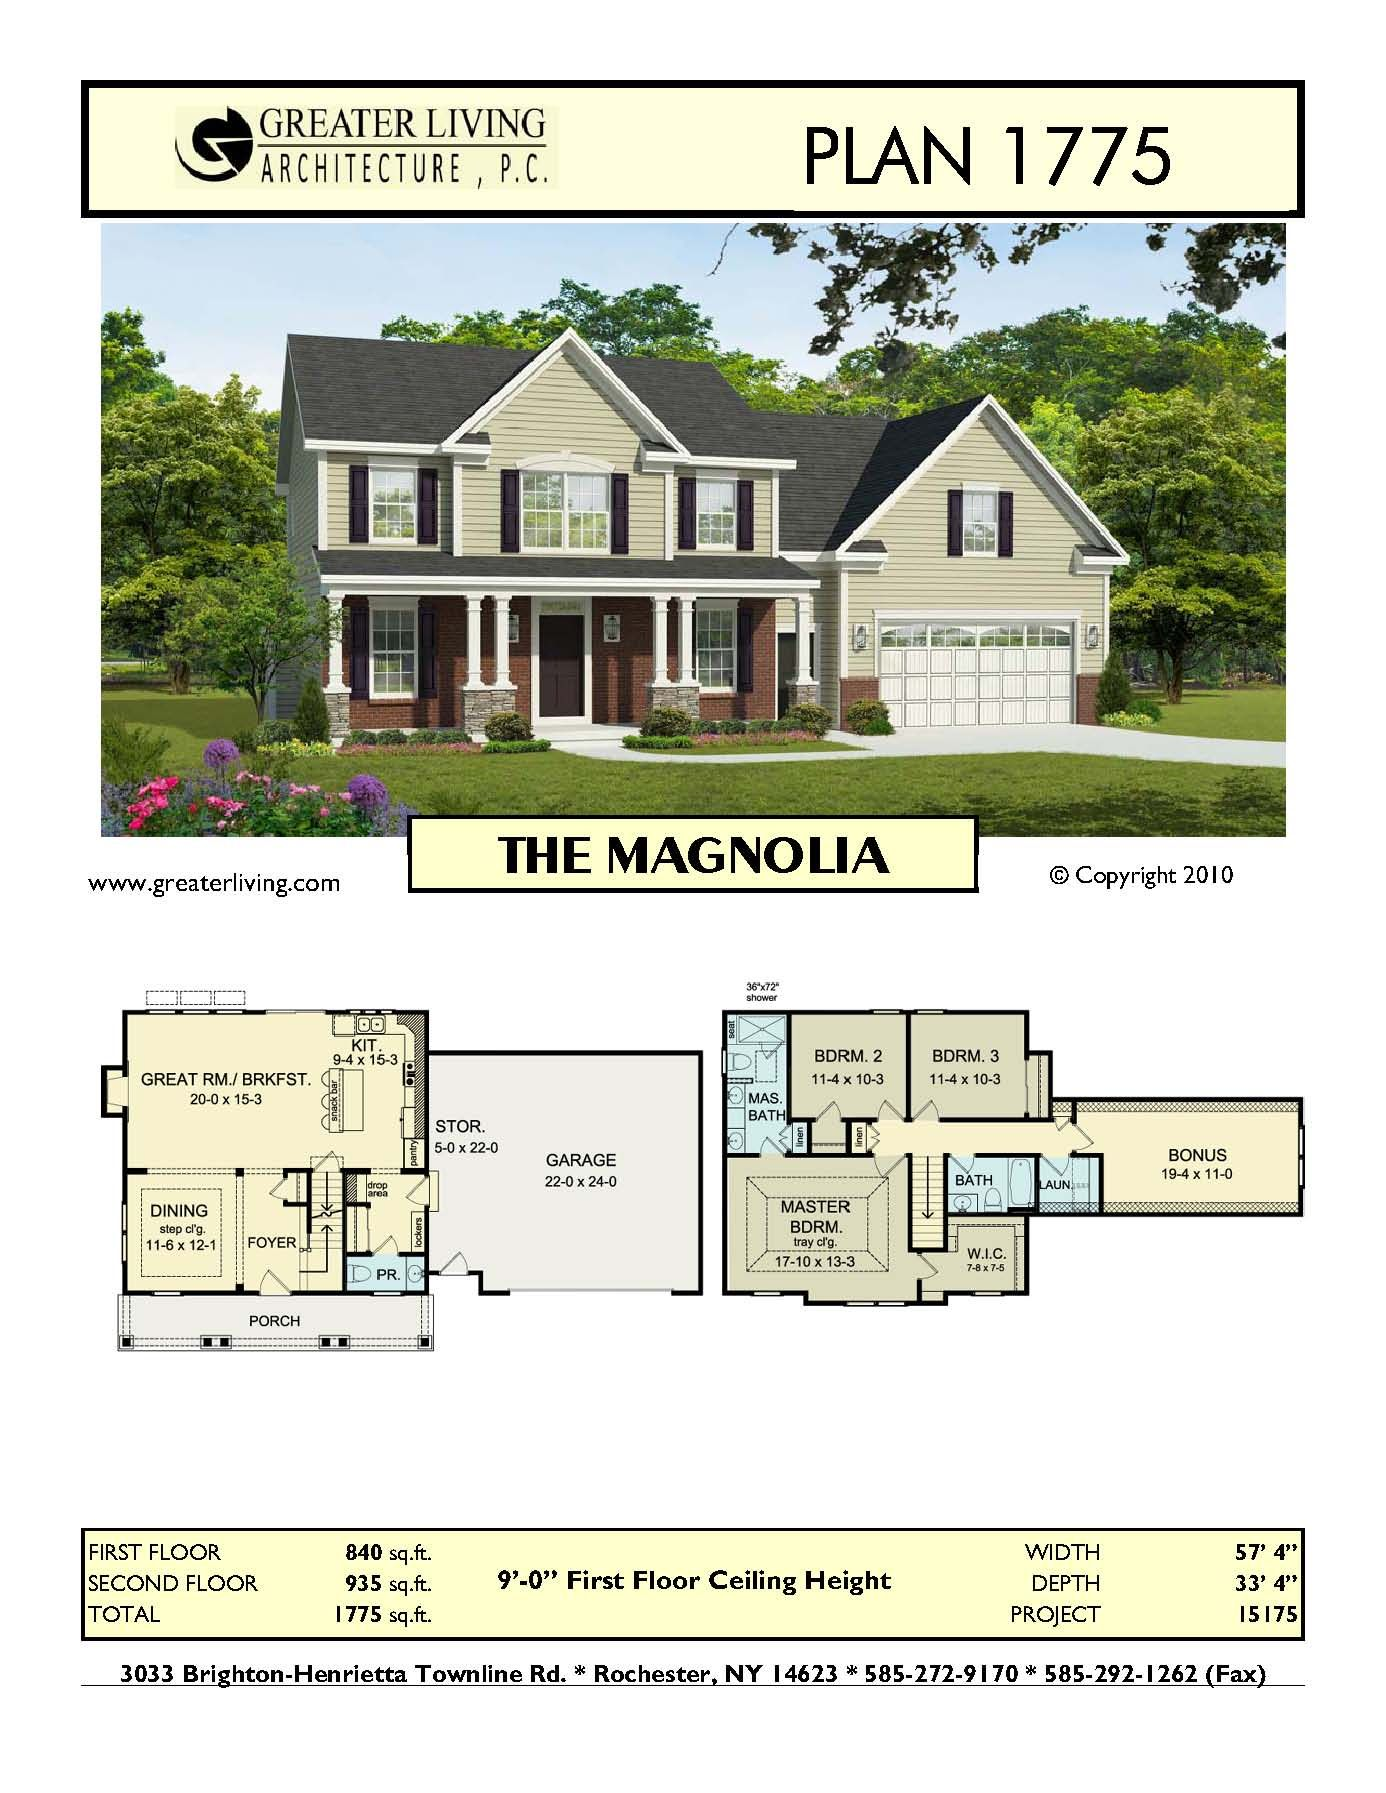 plan 1775: the magnolia - house plans - two story house plans - 2